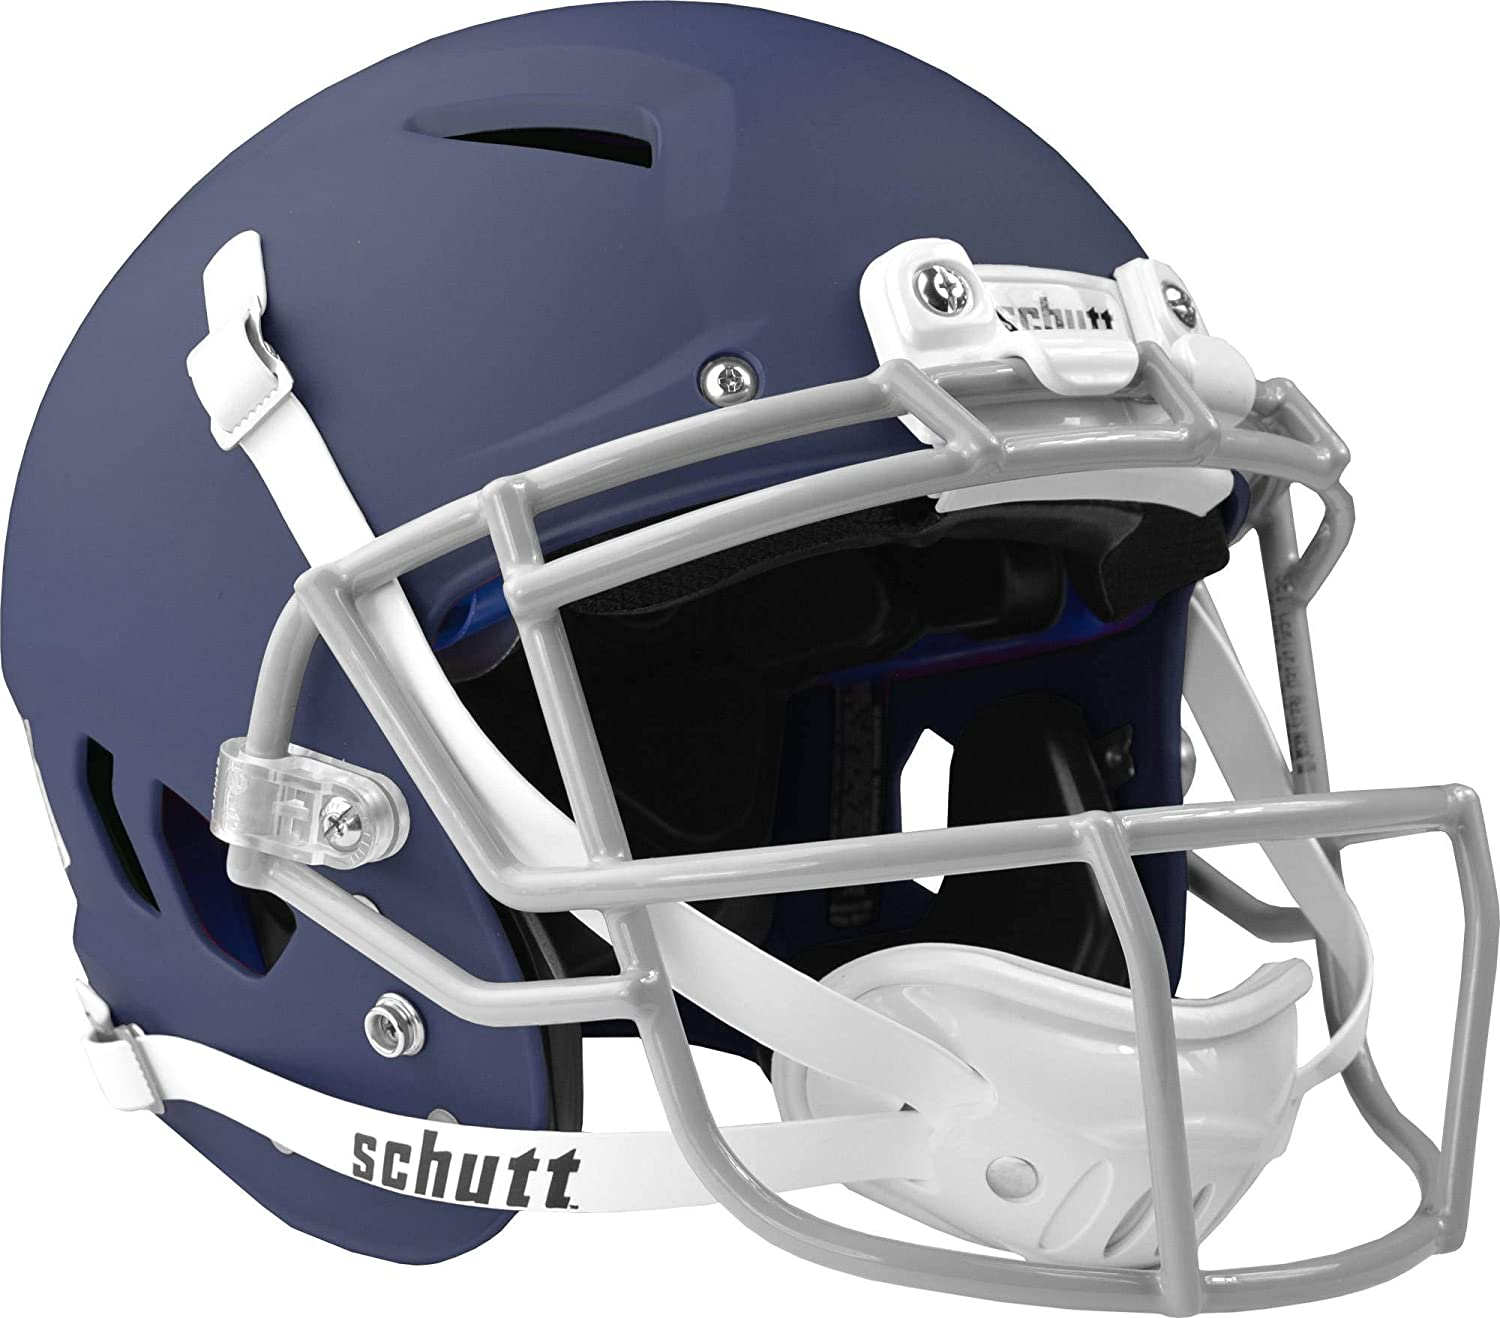 Schutt vengeance pro adult football helmet facemask not included sports  outdoors fútbol americano schutt jpg 1500x1318 6d9debcf8fc